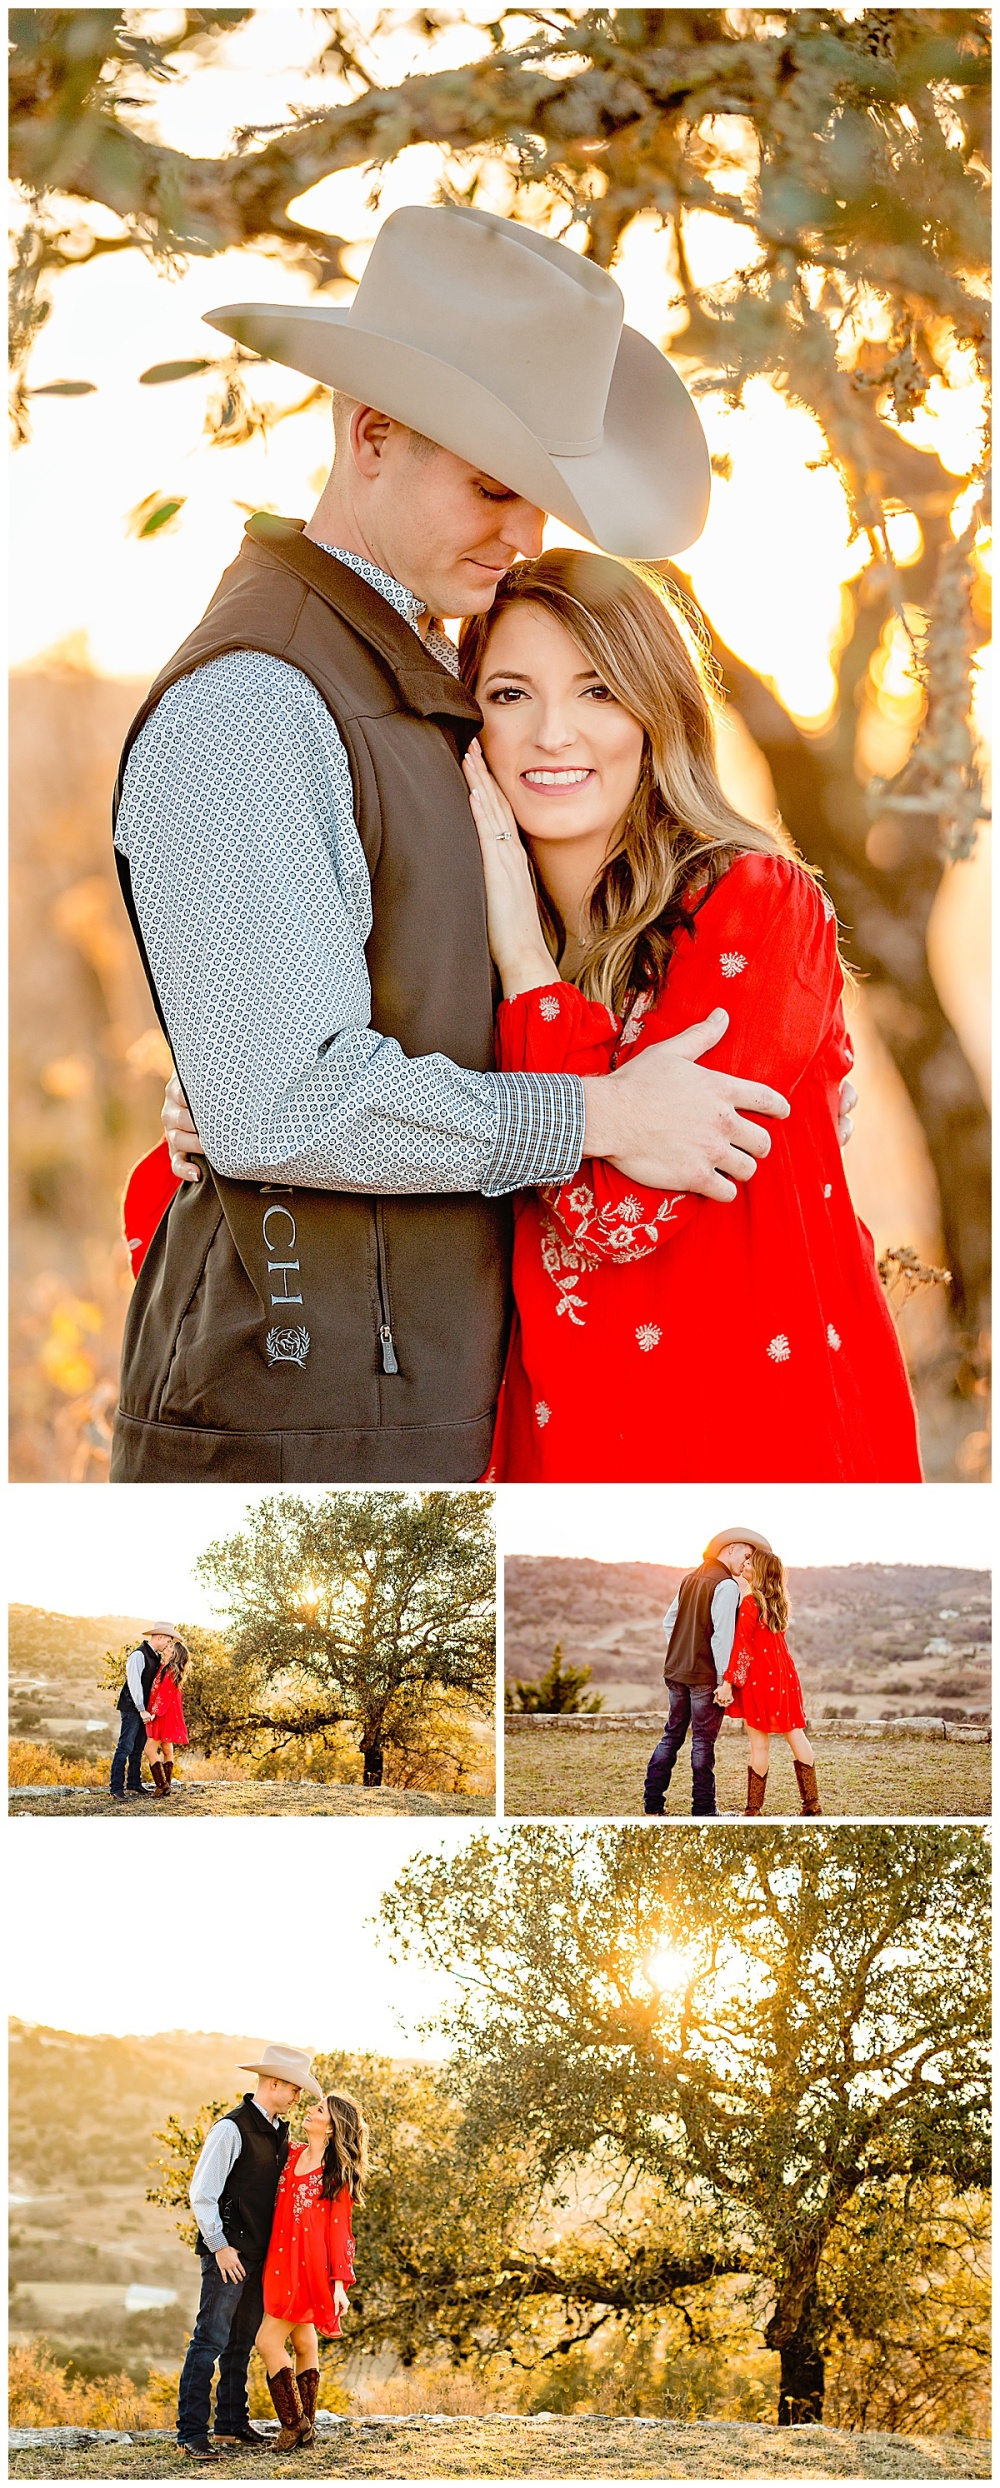 South-Texas-Wedding-Photographer-Engagement-Photos-Happy-H-Ranch-Comfort-Texas-Sunset-Couples-Carly-Barton-Photography-Justin-Erica_0014.jpg